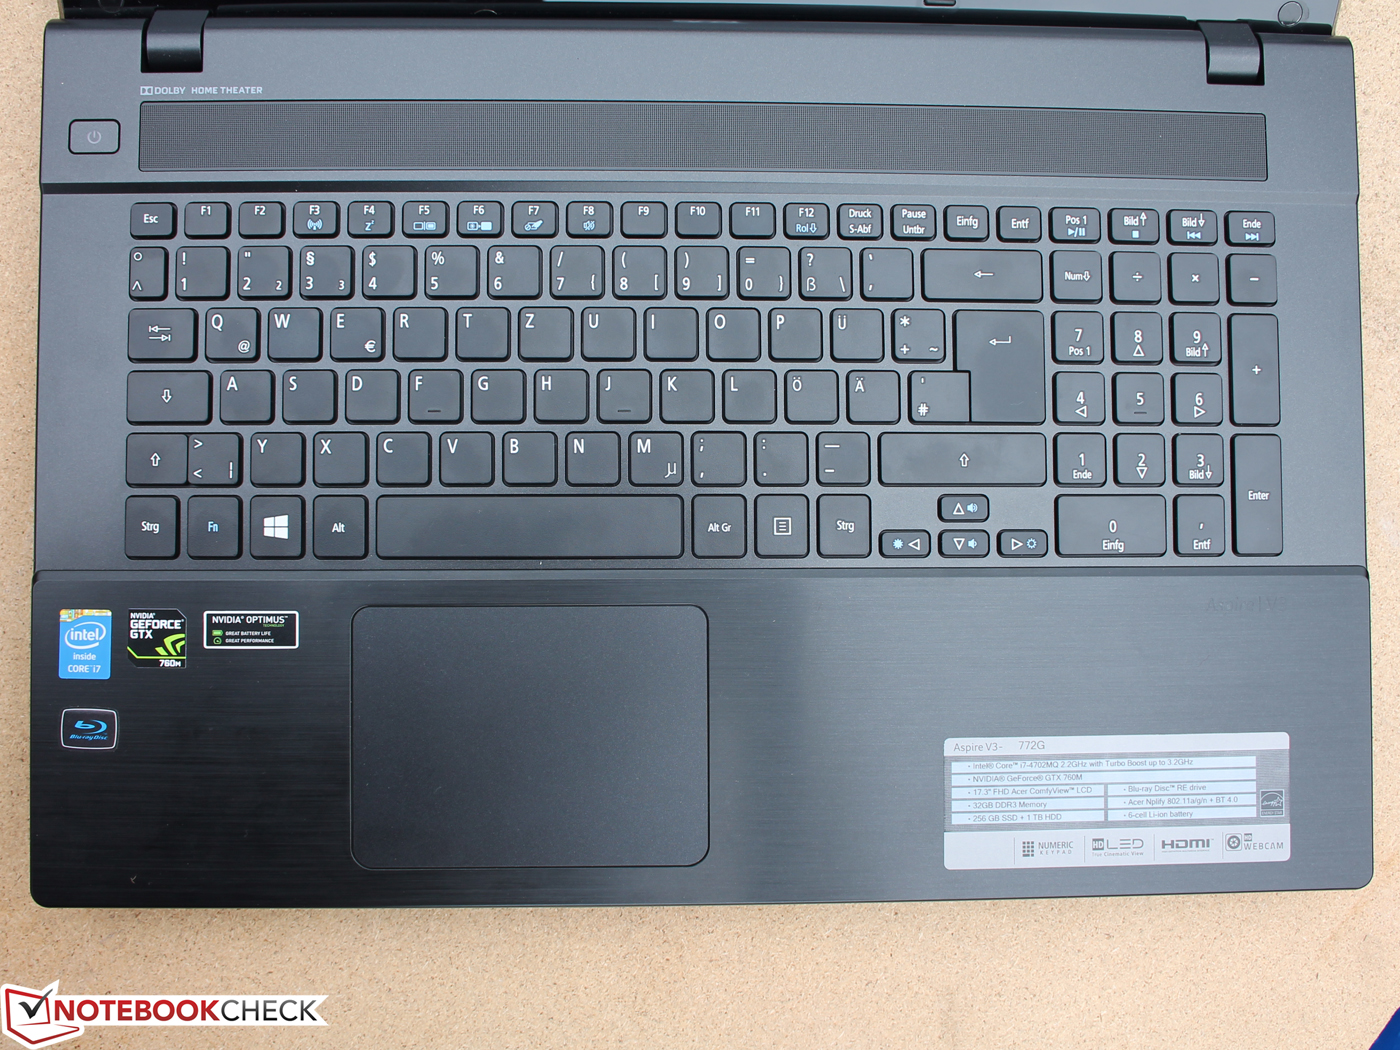 Aspire_V3_772G_28 review acer aspire v3 772g 747a321 notebook notebookcheck net  at bakdesigns.co